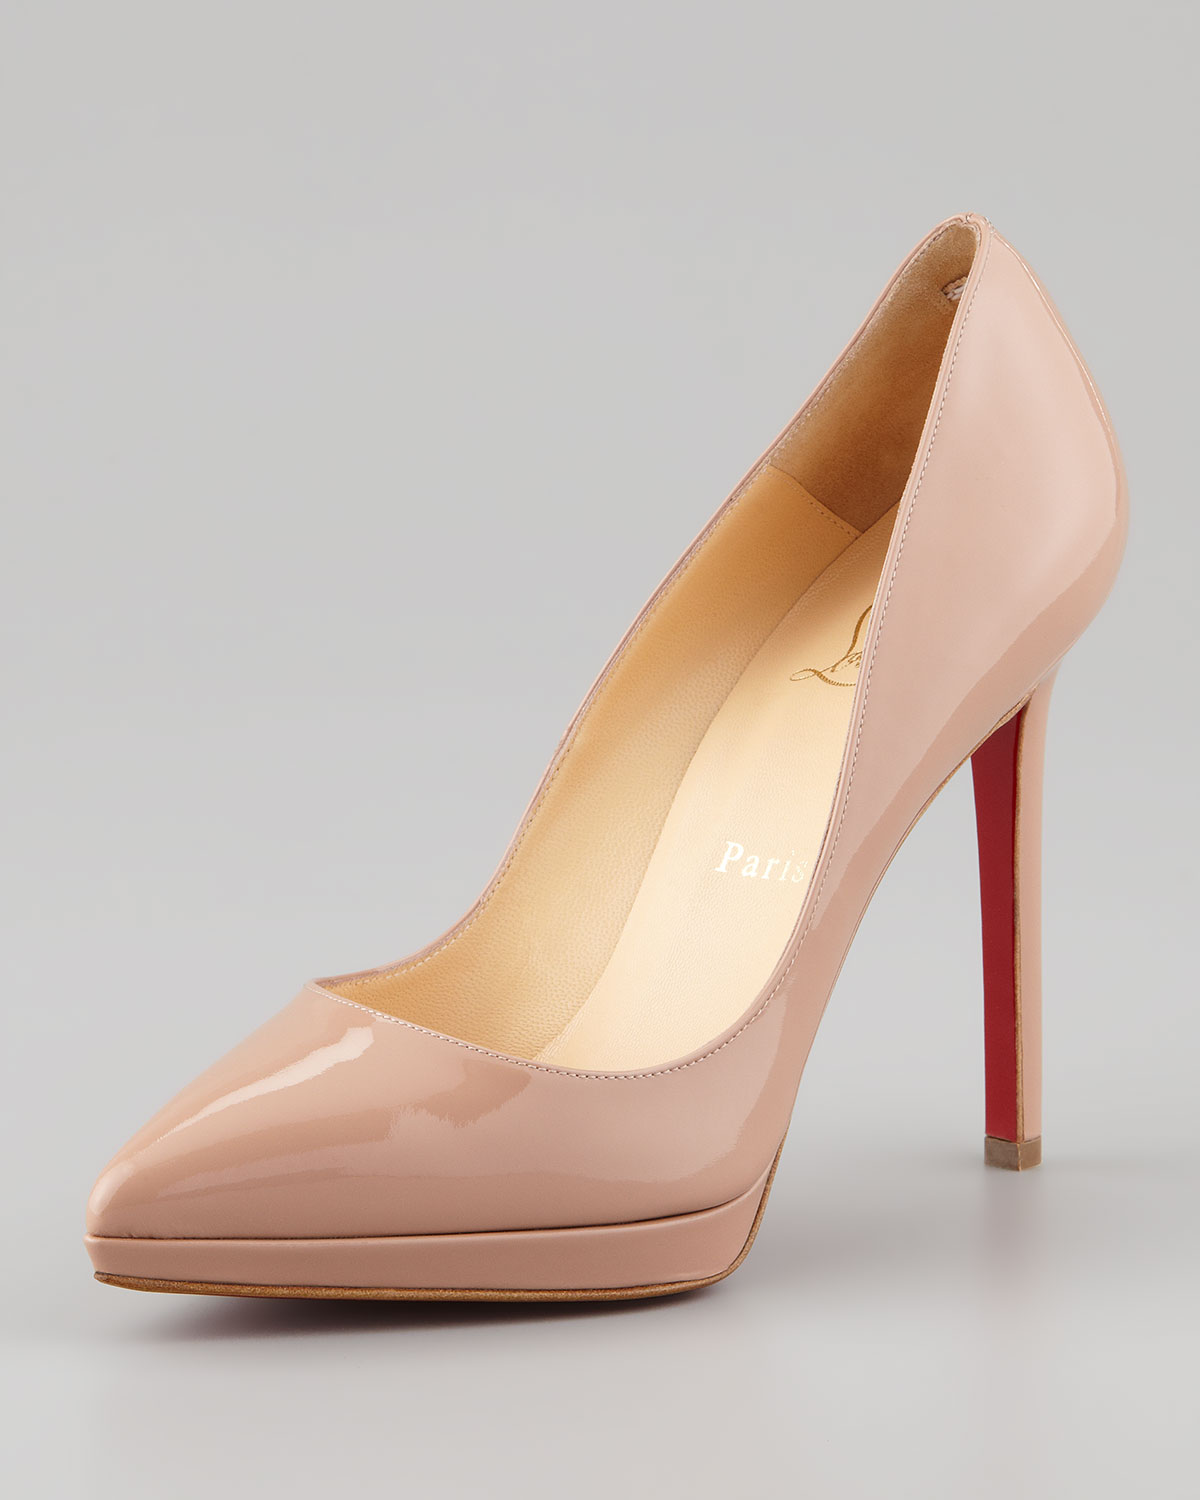 7f4ee1b0db66 Gallery. Previously sold at  Neiman Marcus · Women s Christian Louboutin  Plato Women s Christian Louboutin Pigalle